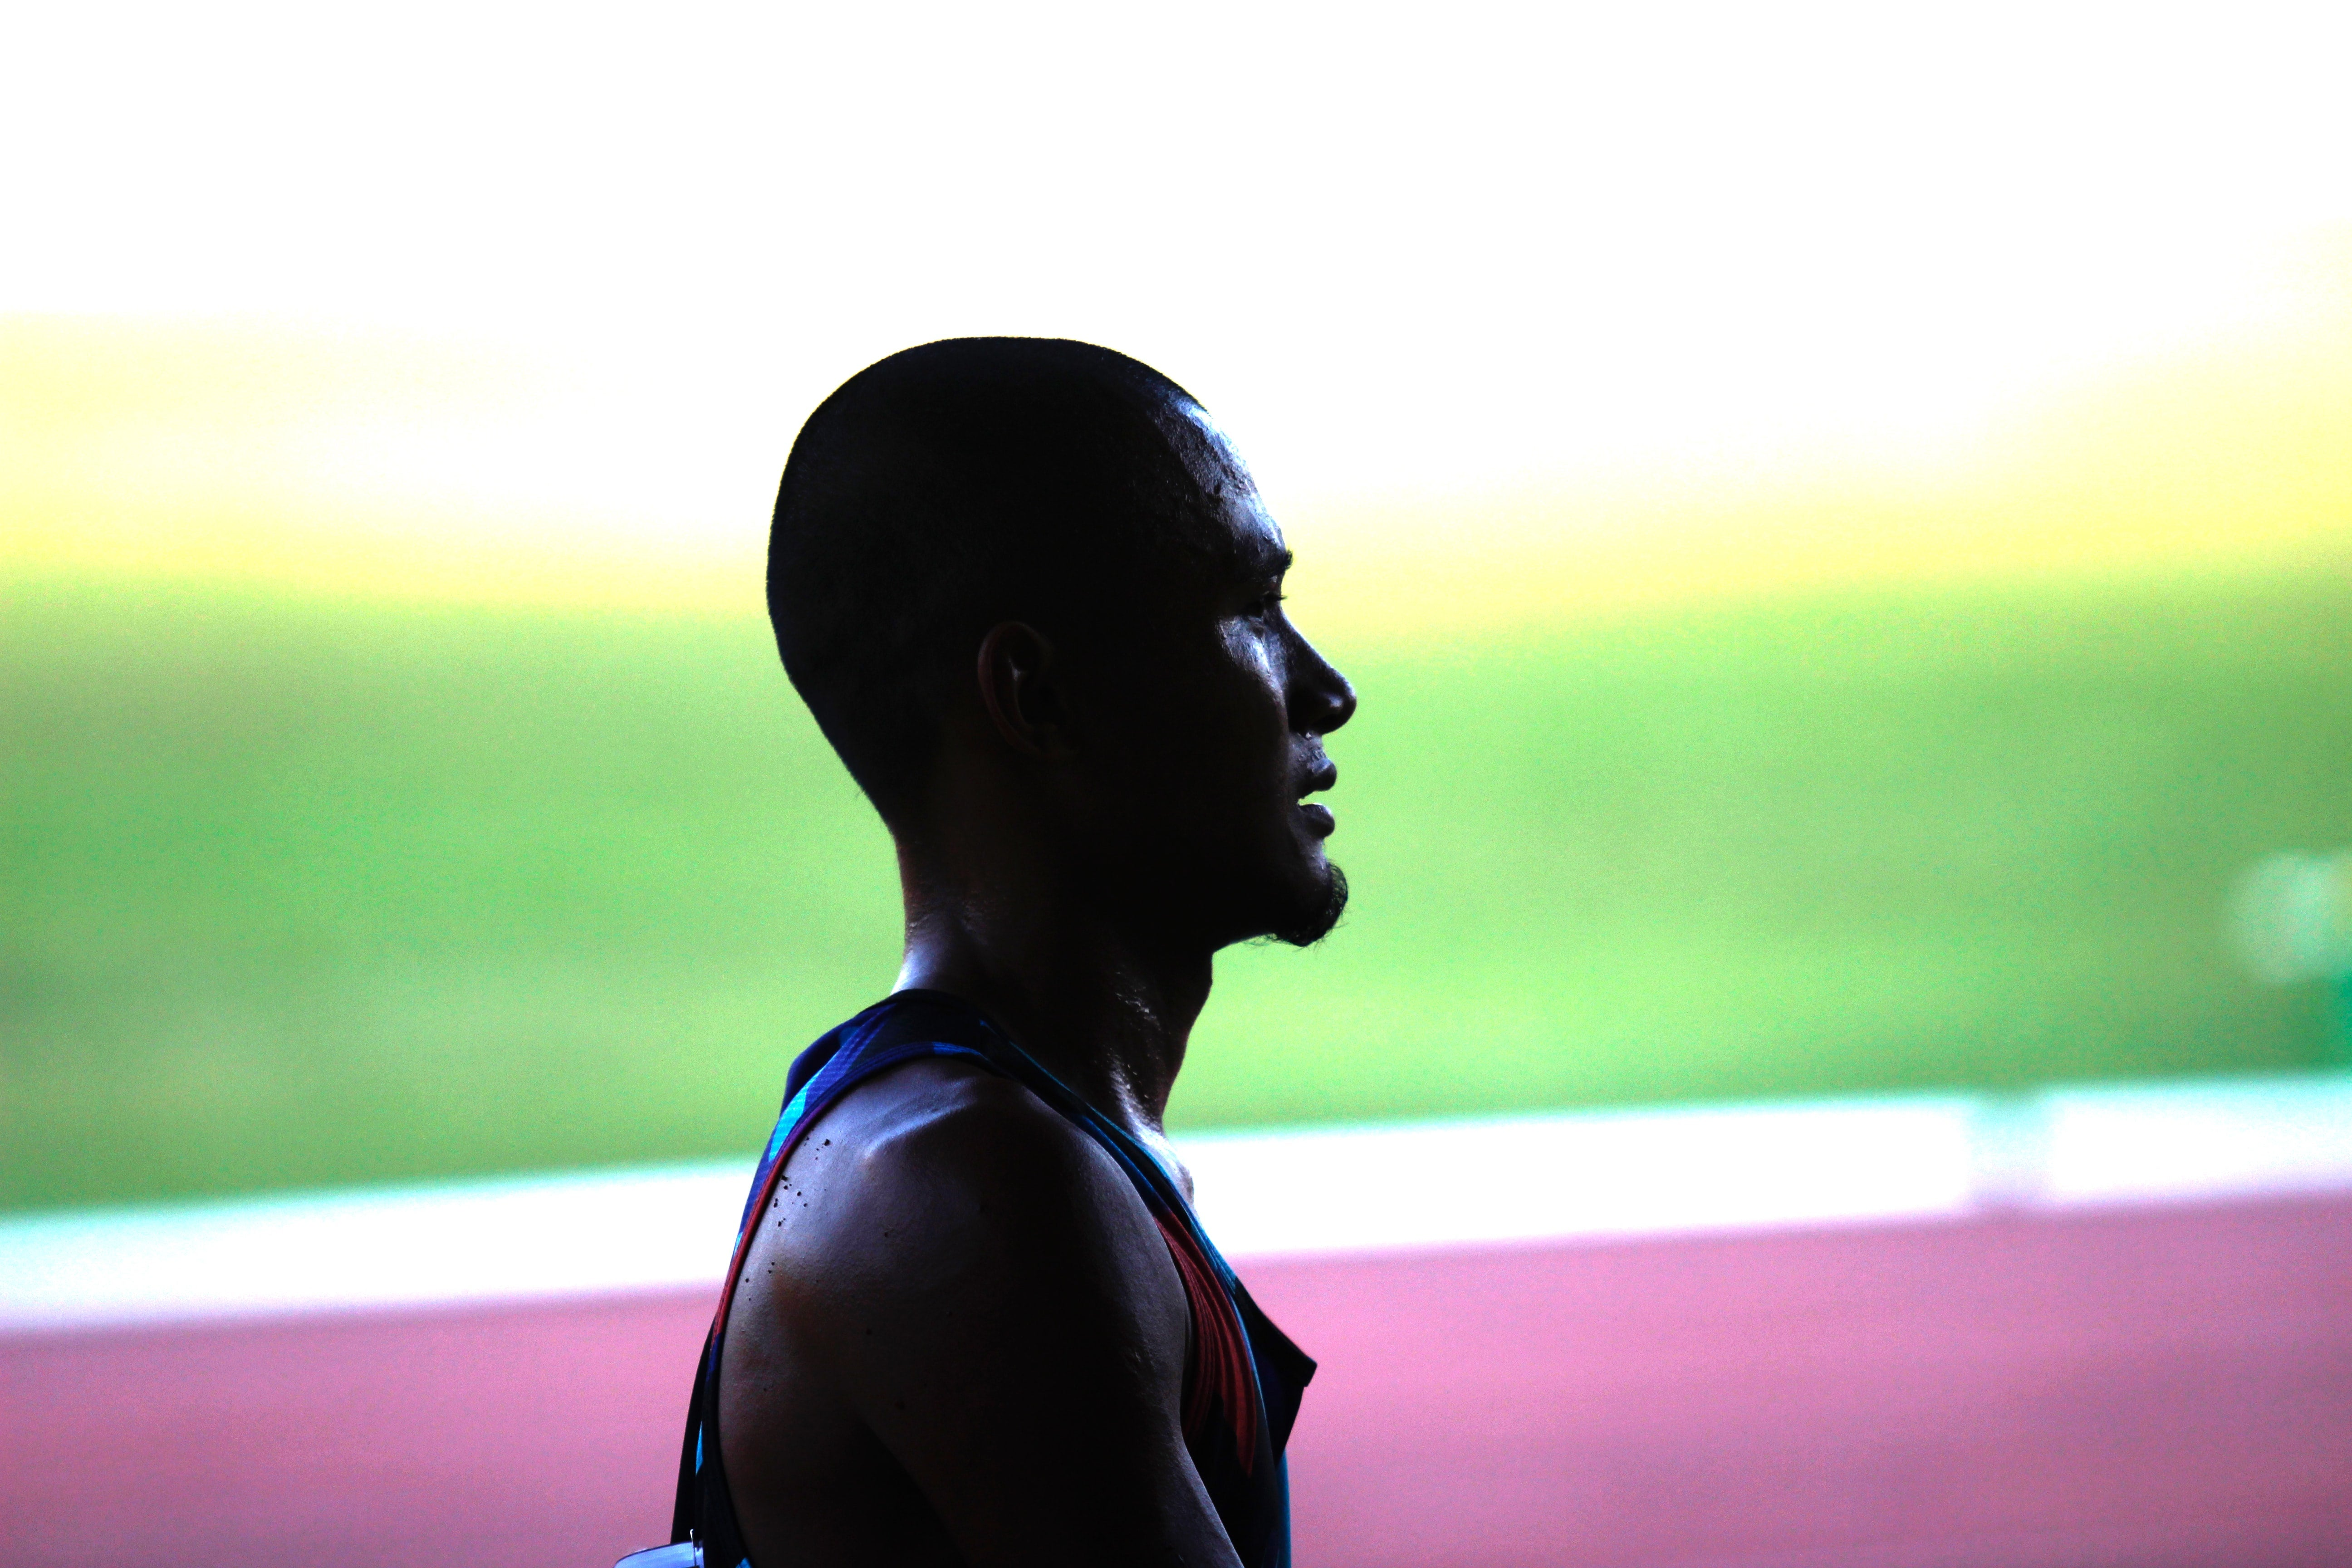 A male track runner